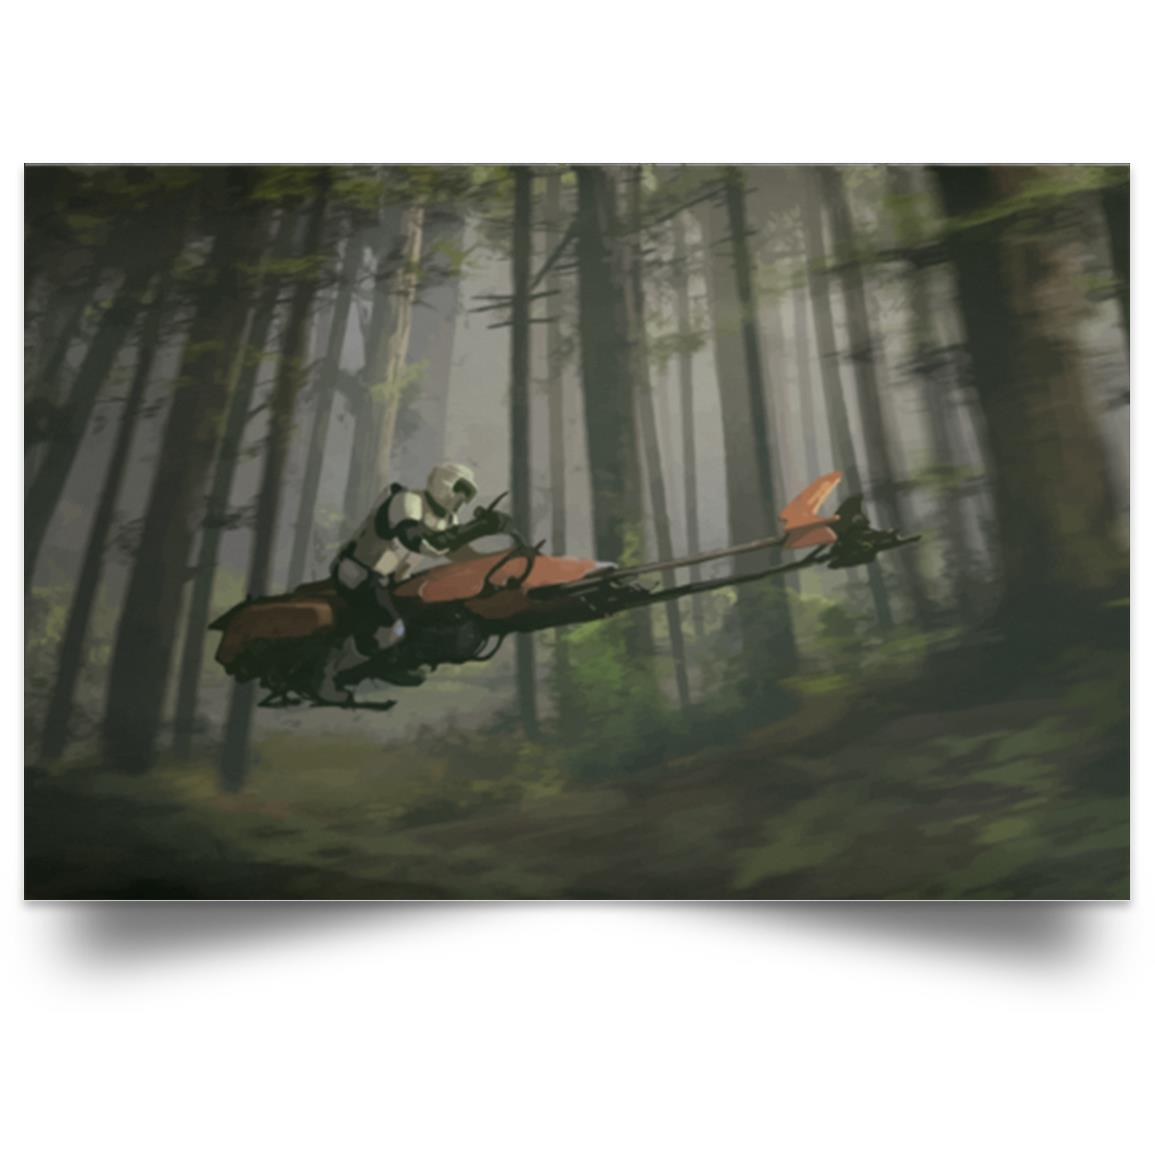 STAR WARS SCOOT TROOPER ON ENDOR RIDE POSTER 1